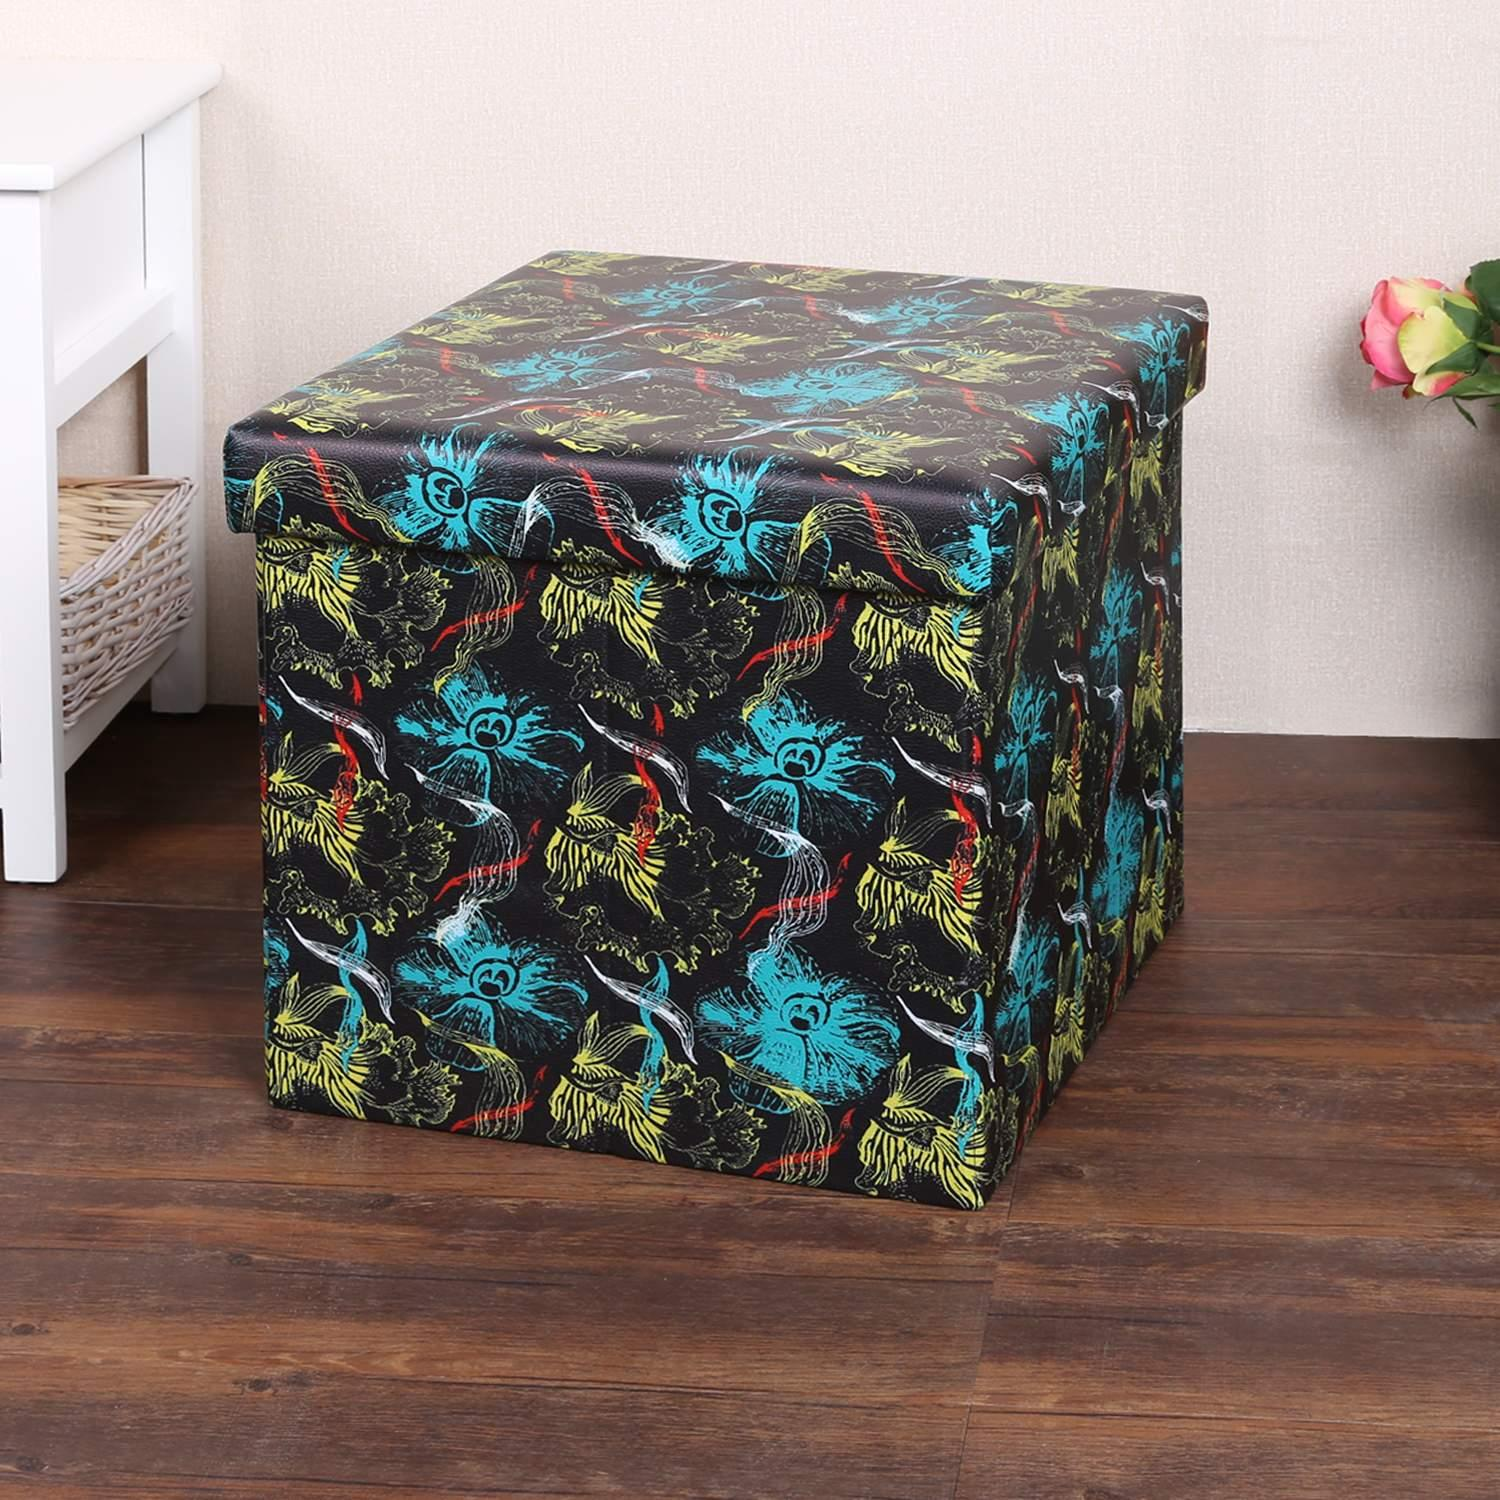 Foldable Seat Foot Rest Stool Seat Storage Ottoman Faux Leather Collapsible ECBY